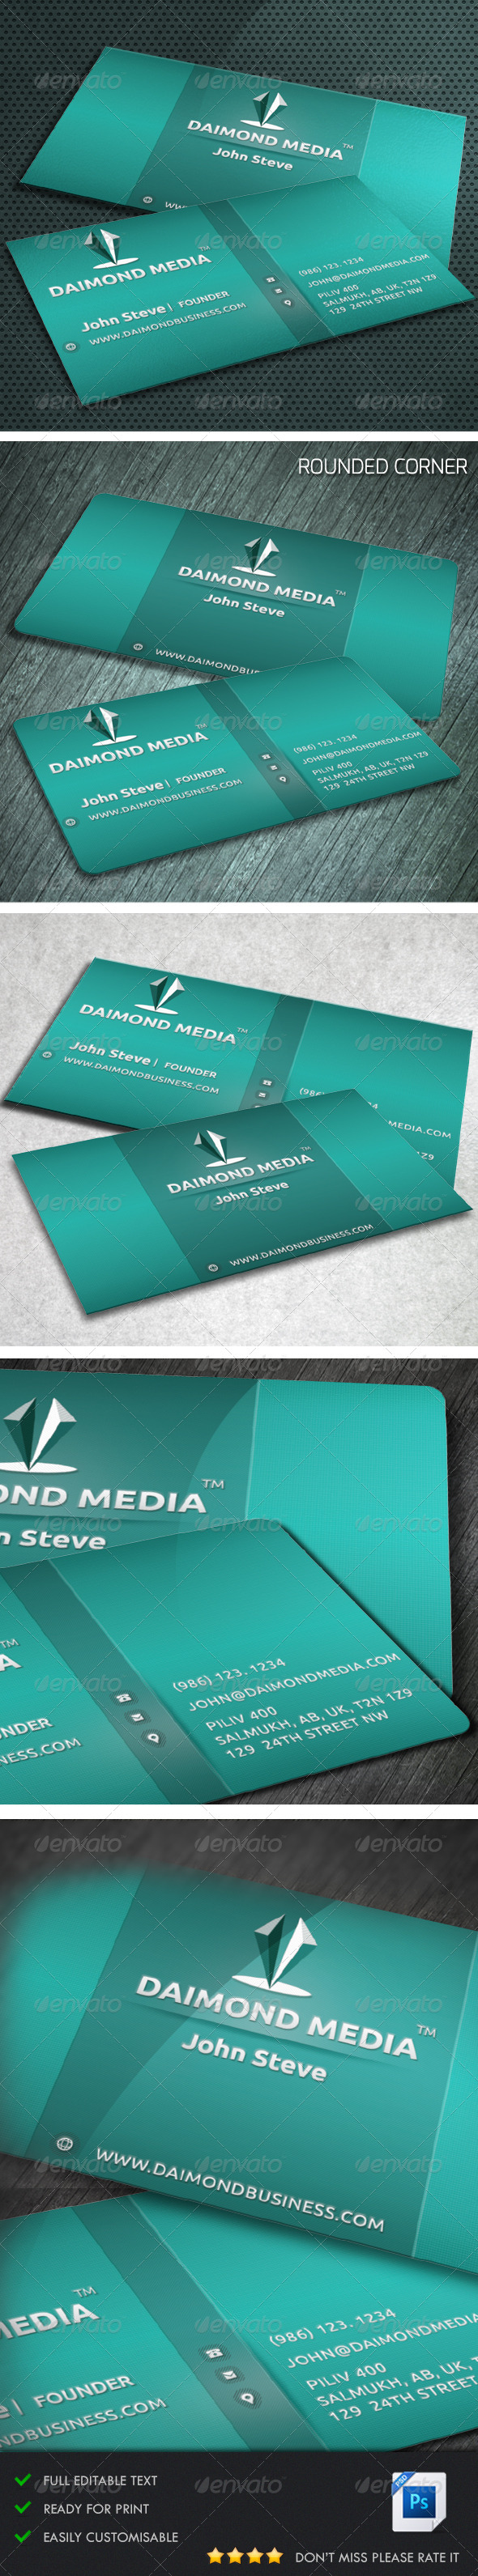 GraphicRiver Corporate Business Card v1 5384409